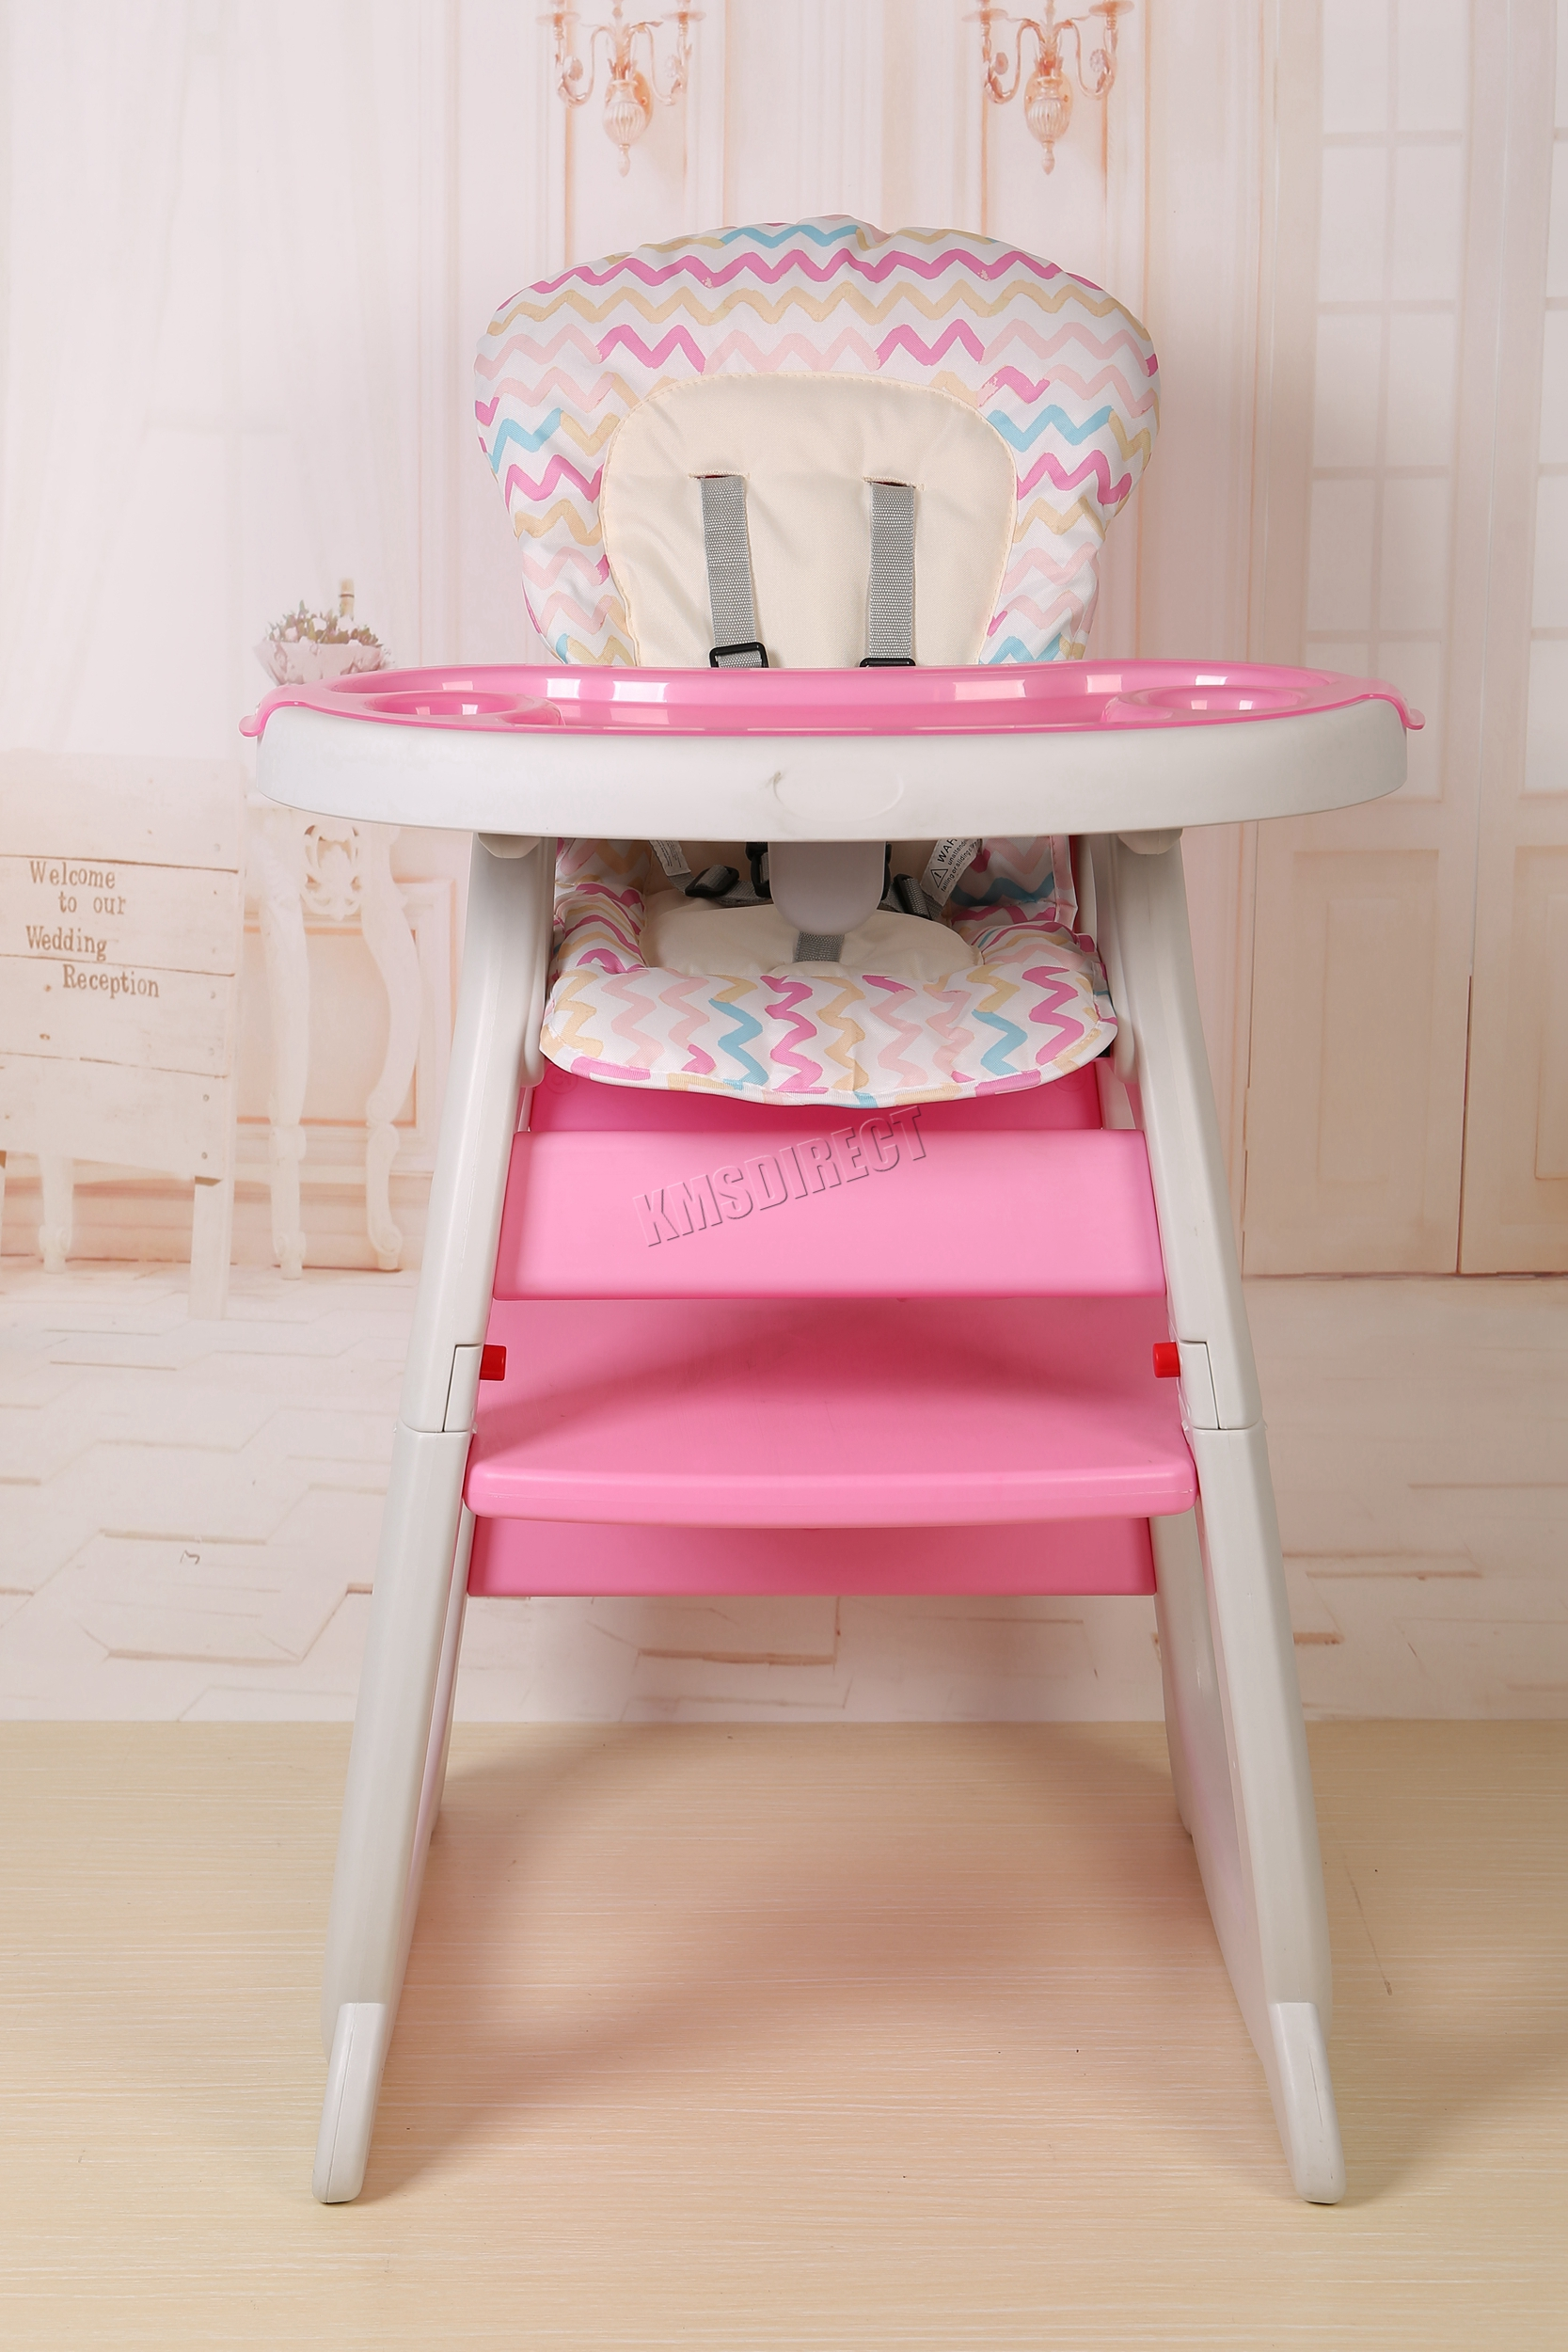 foxhunter baby highchair infant high feeding seat 3in1 toddler table chair new ebay. Black Bedroom Furniture Sets. Home Design Ideas